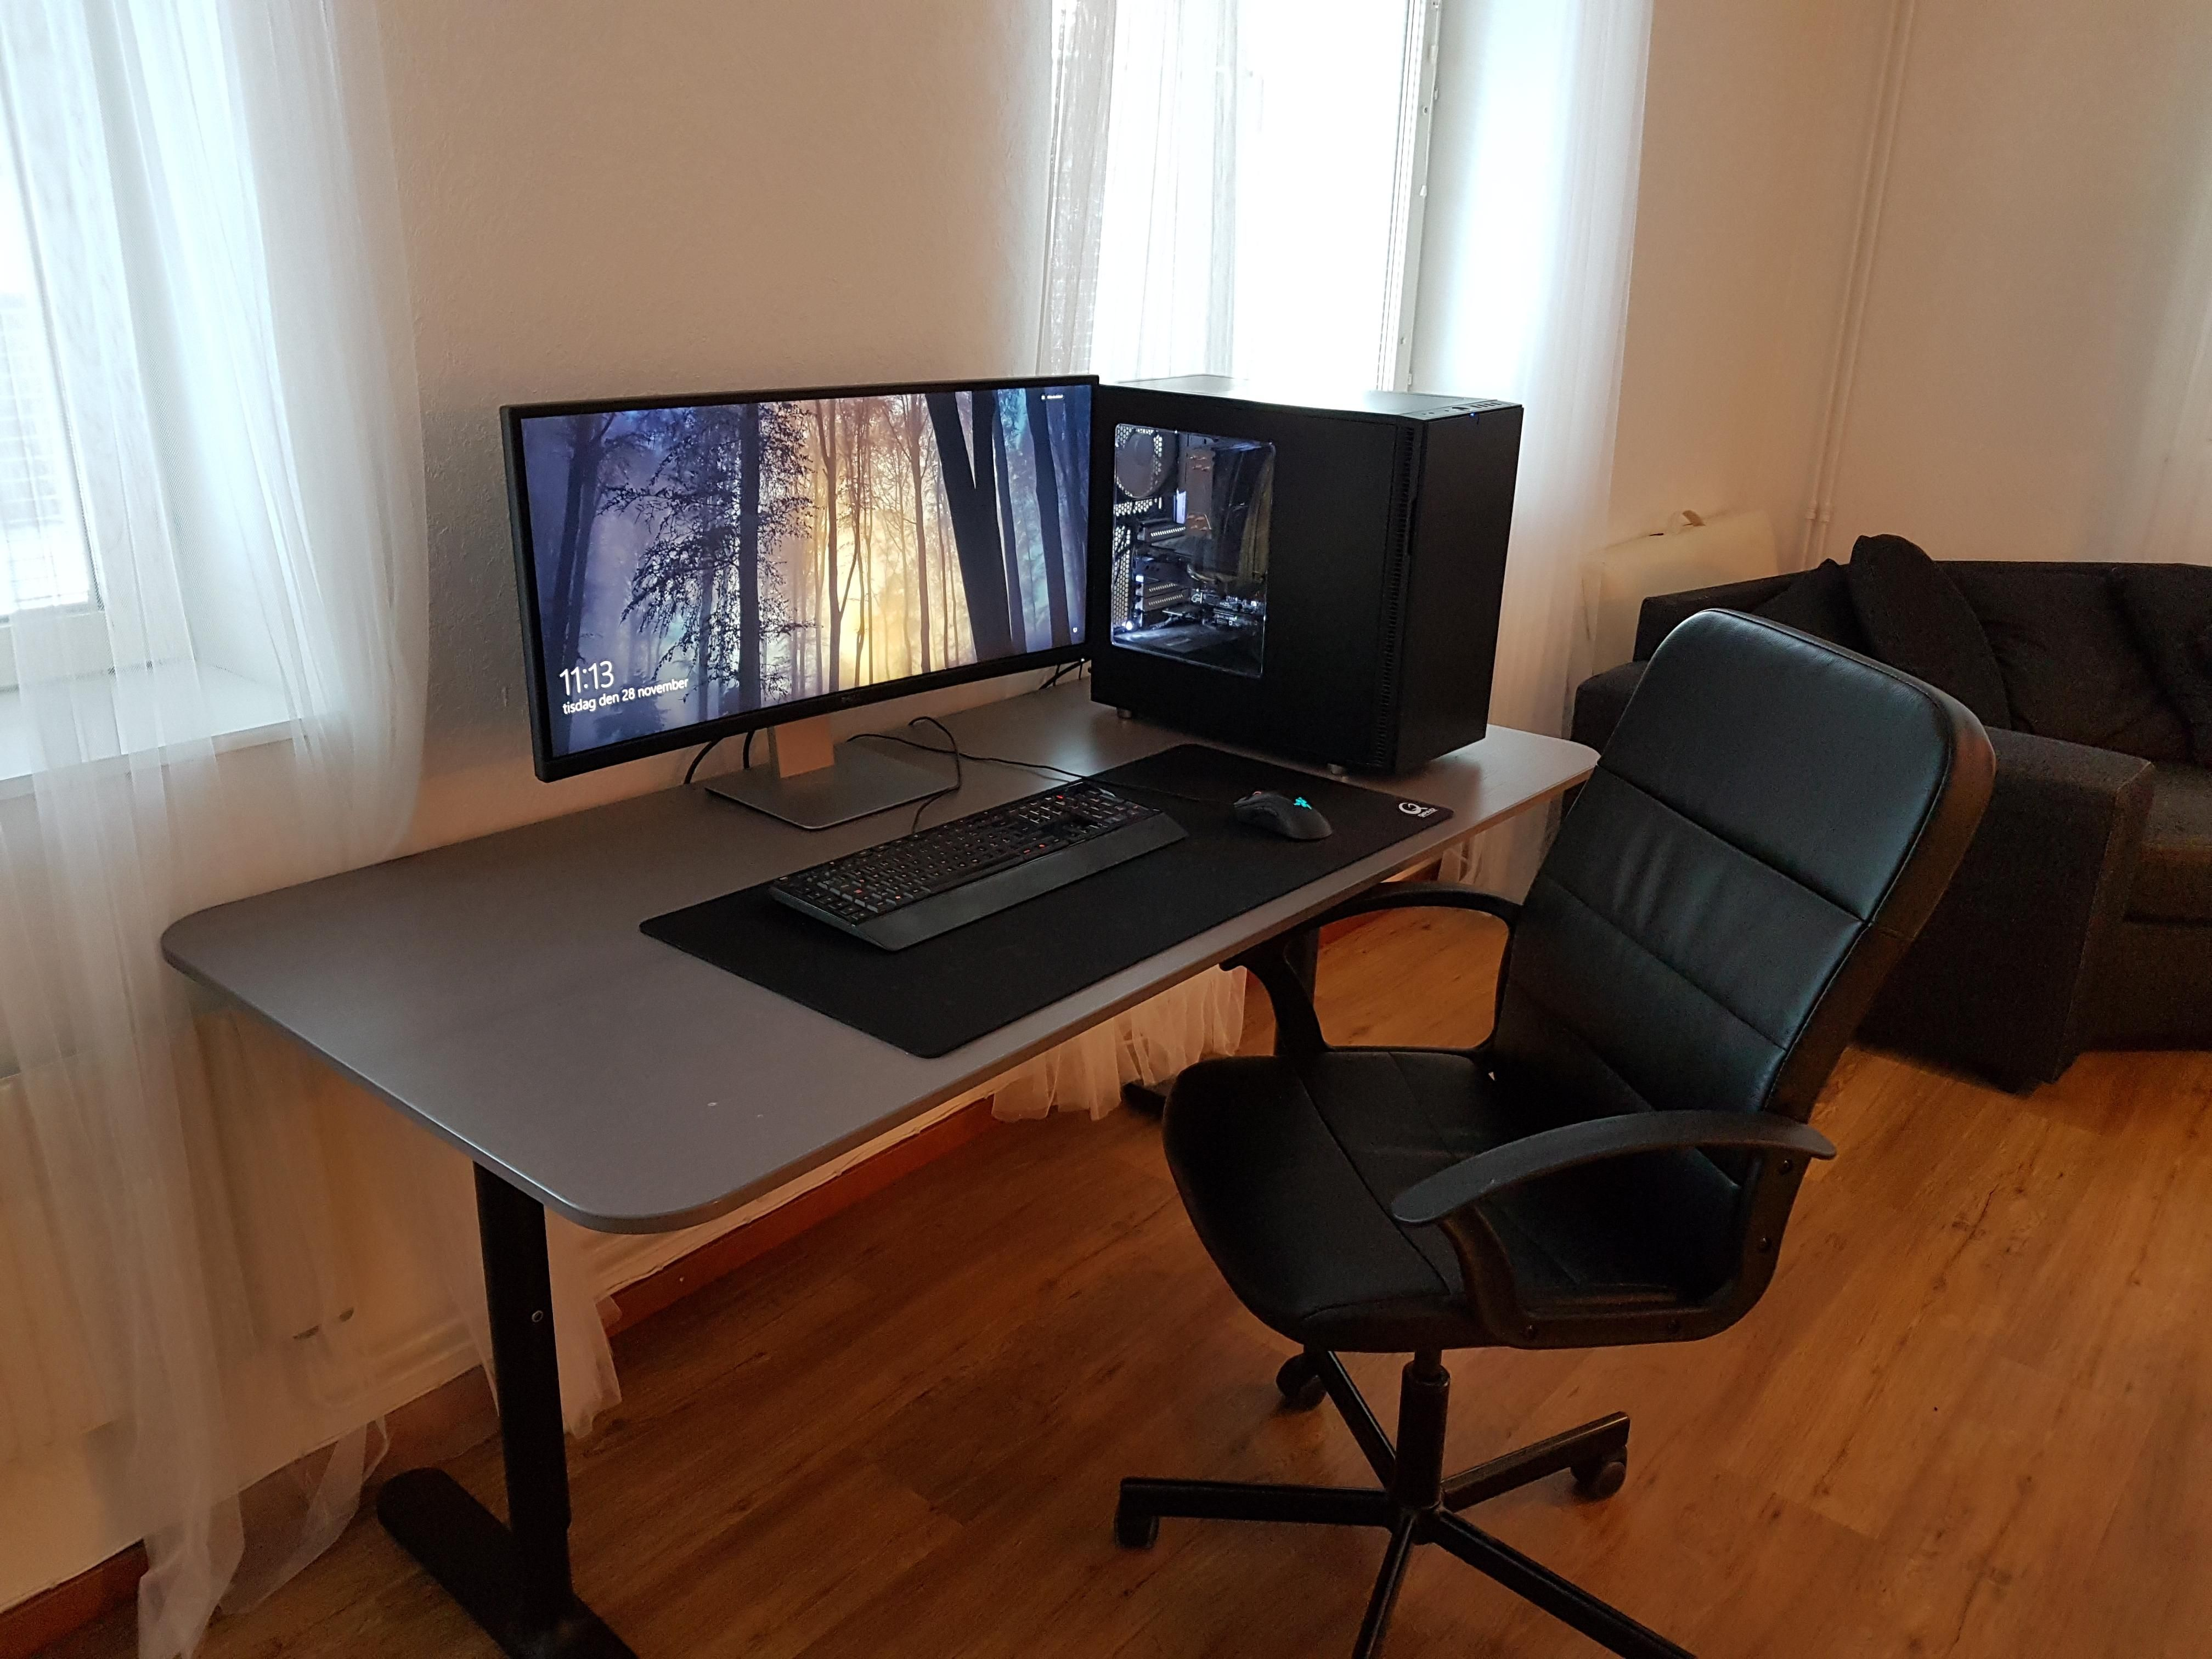 l furniture ashton hutch ergocraft gaming desk shaped for useful with